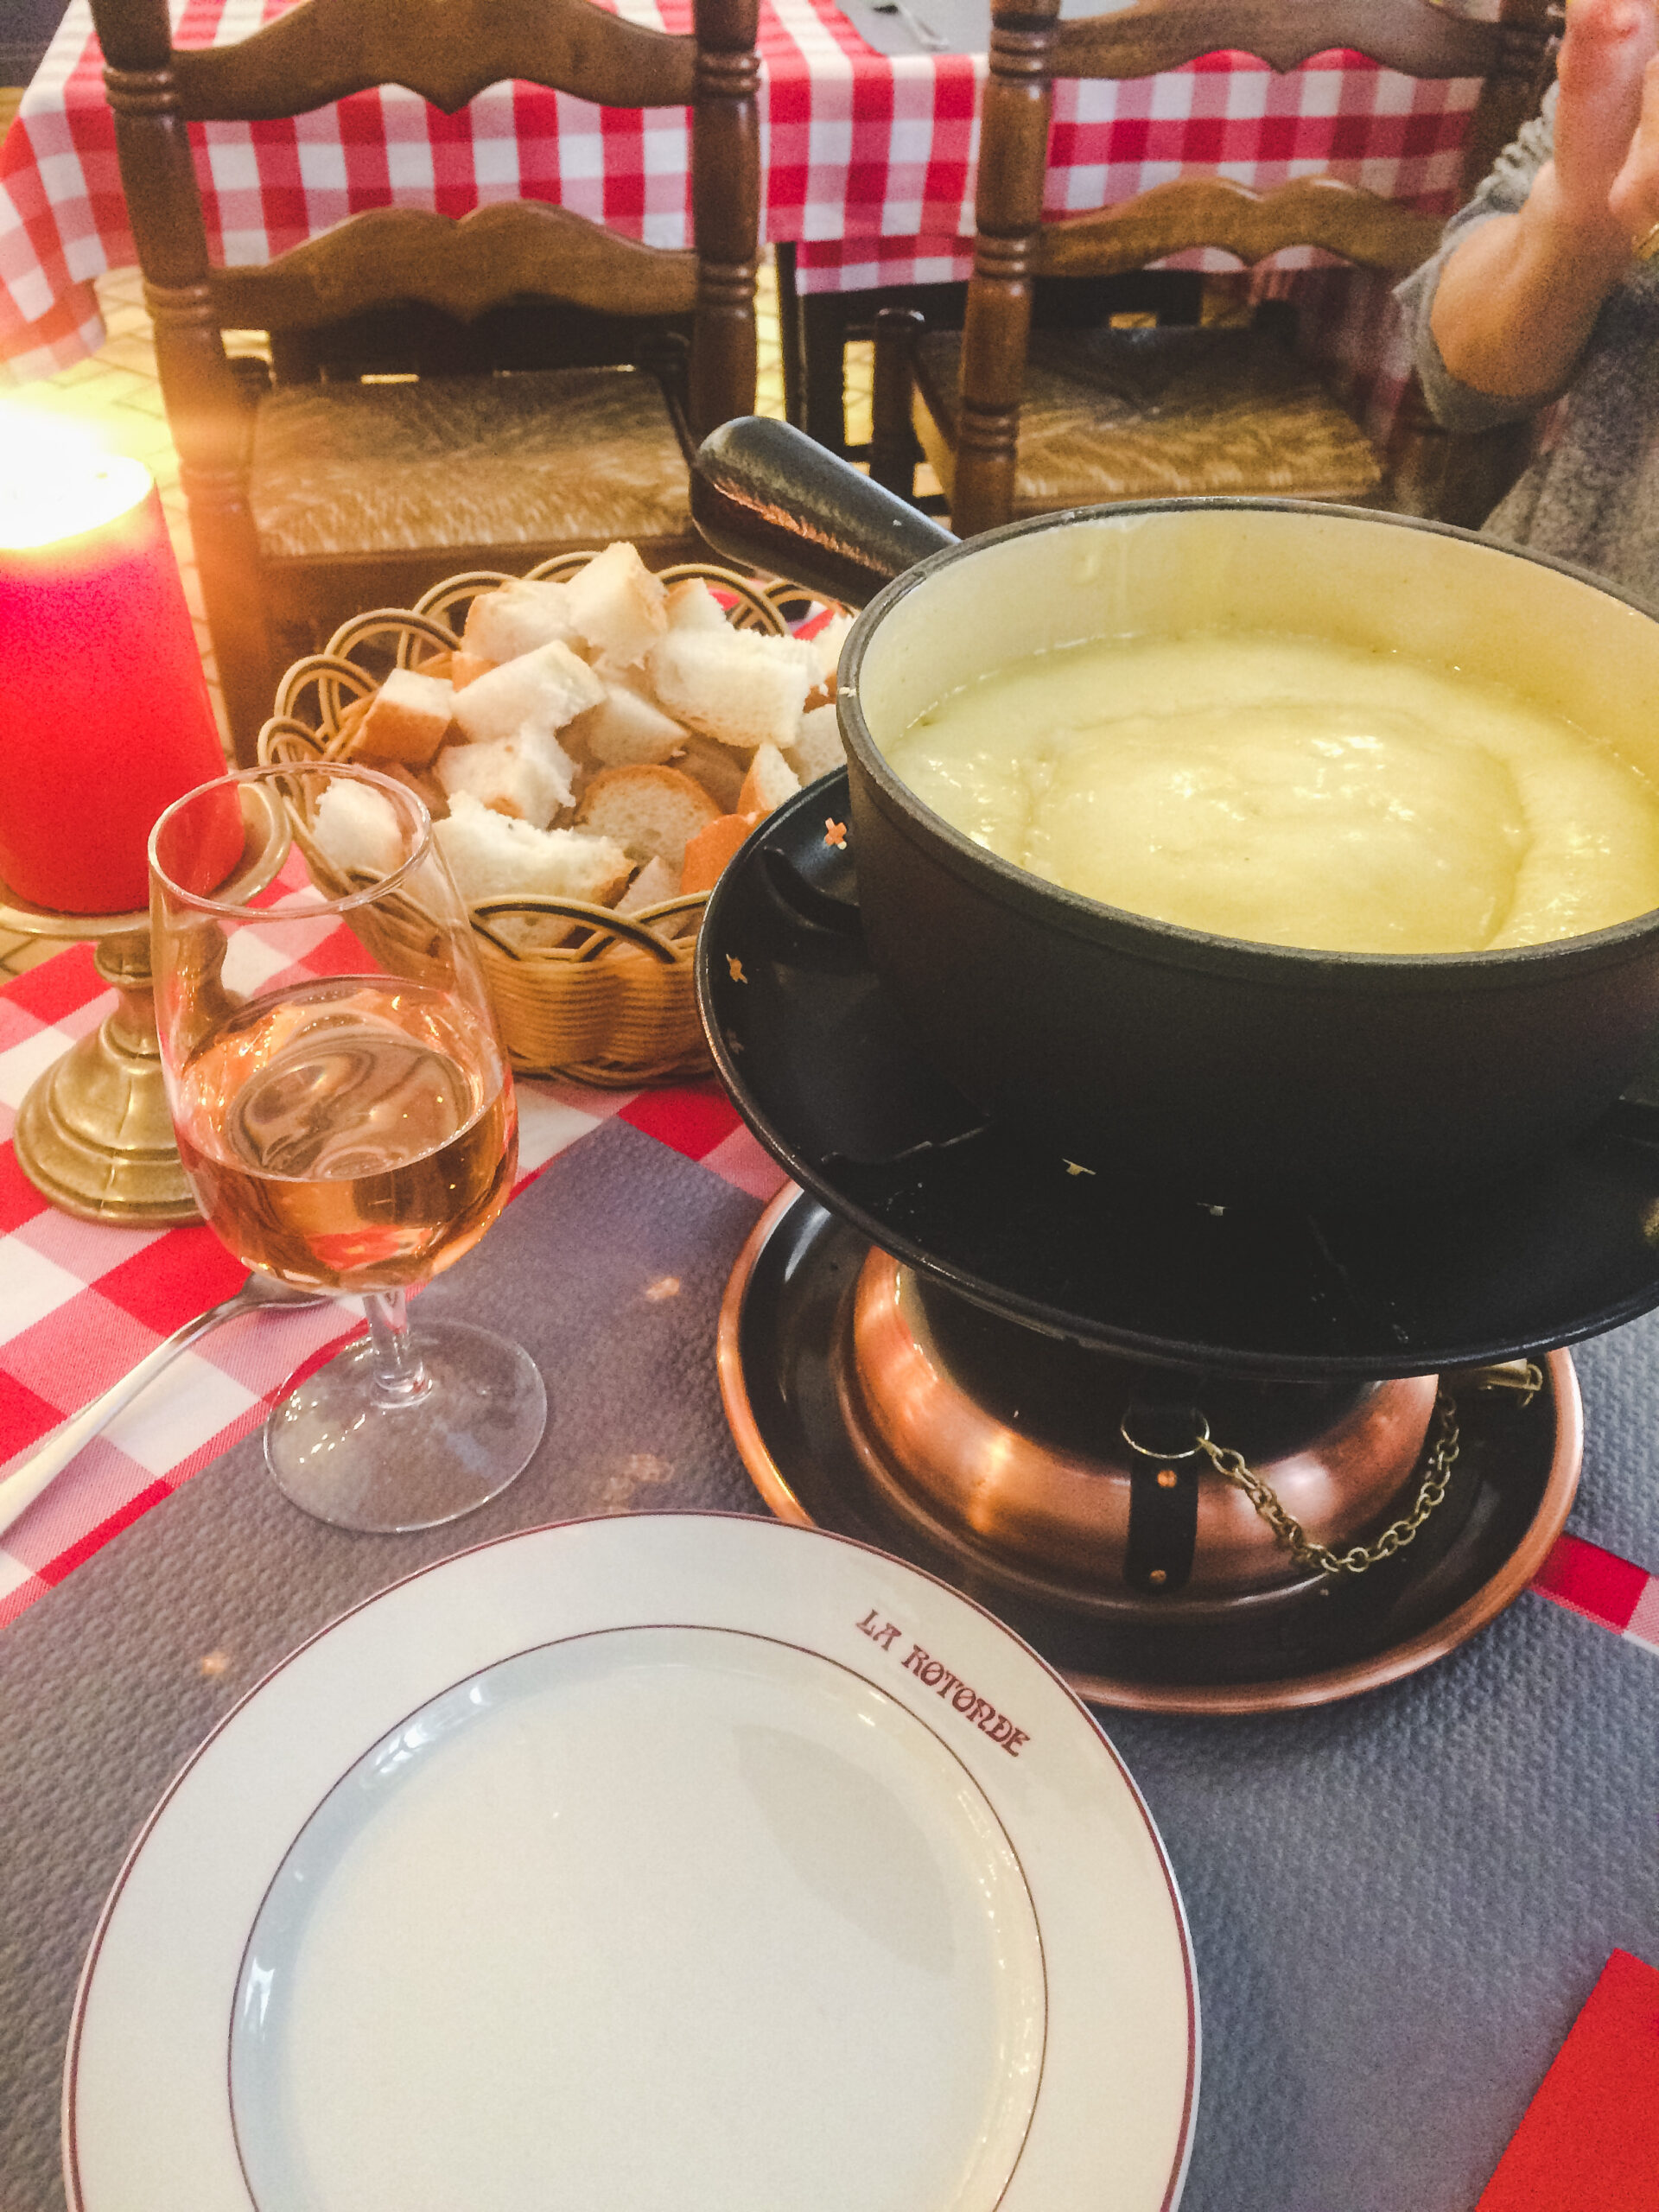 Eating delicious cheese fondue, a must-do in Switzerland!